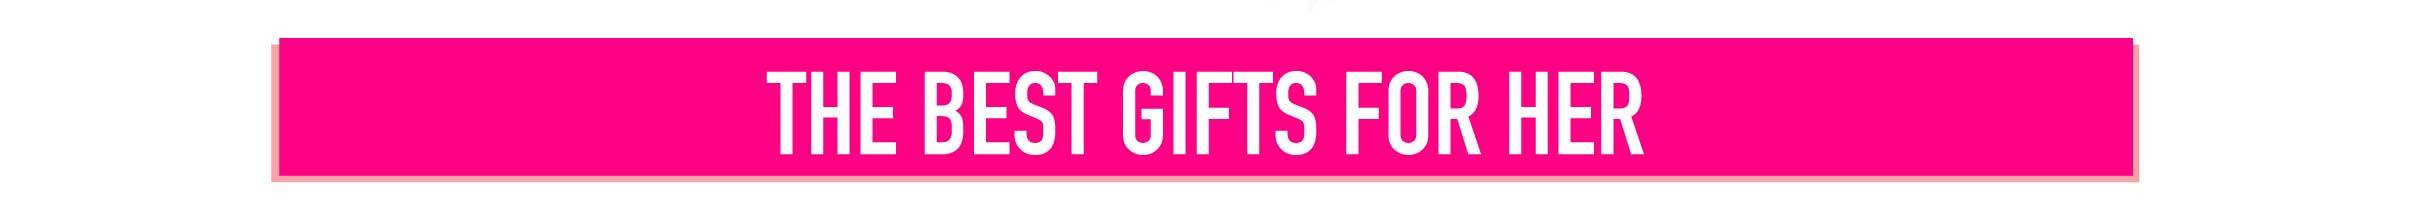 The Best Gifts for Her